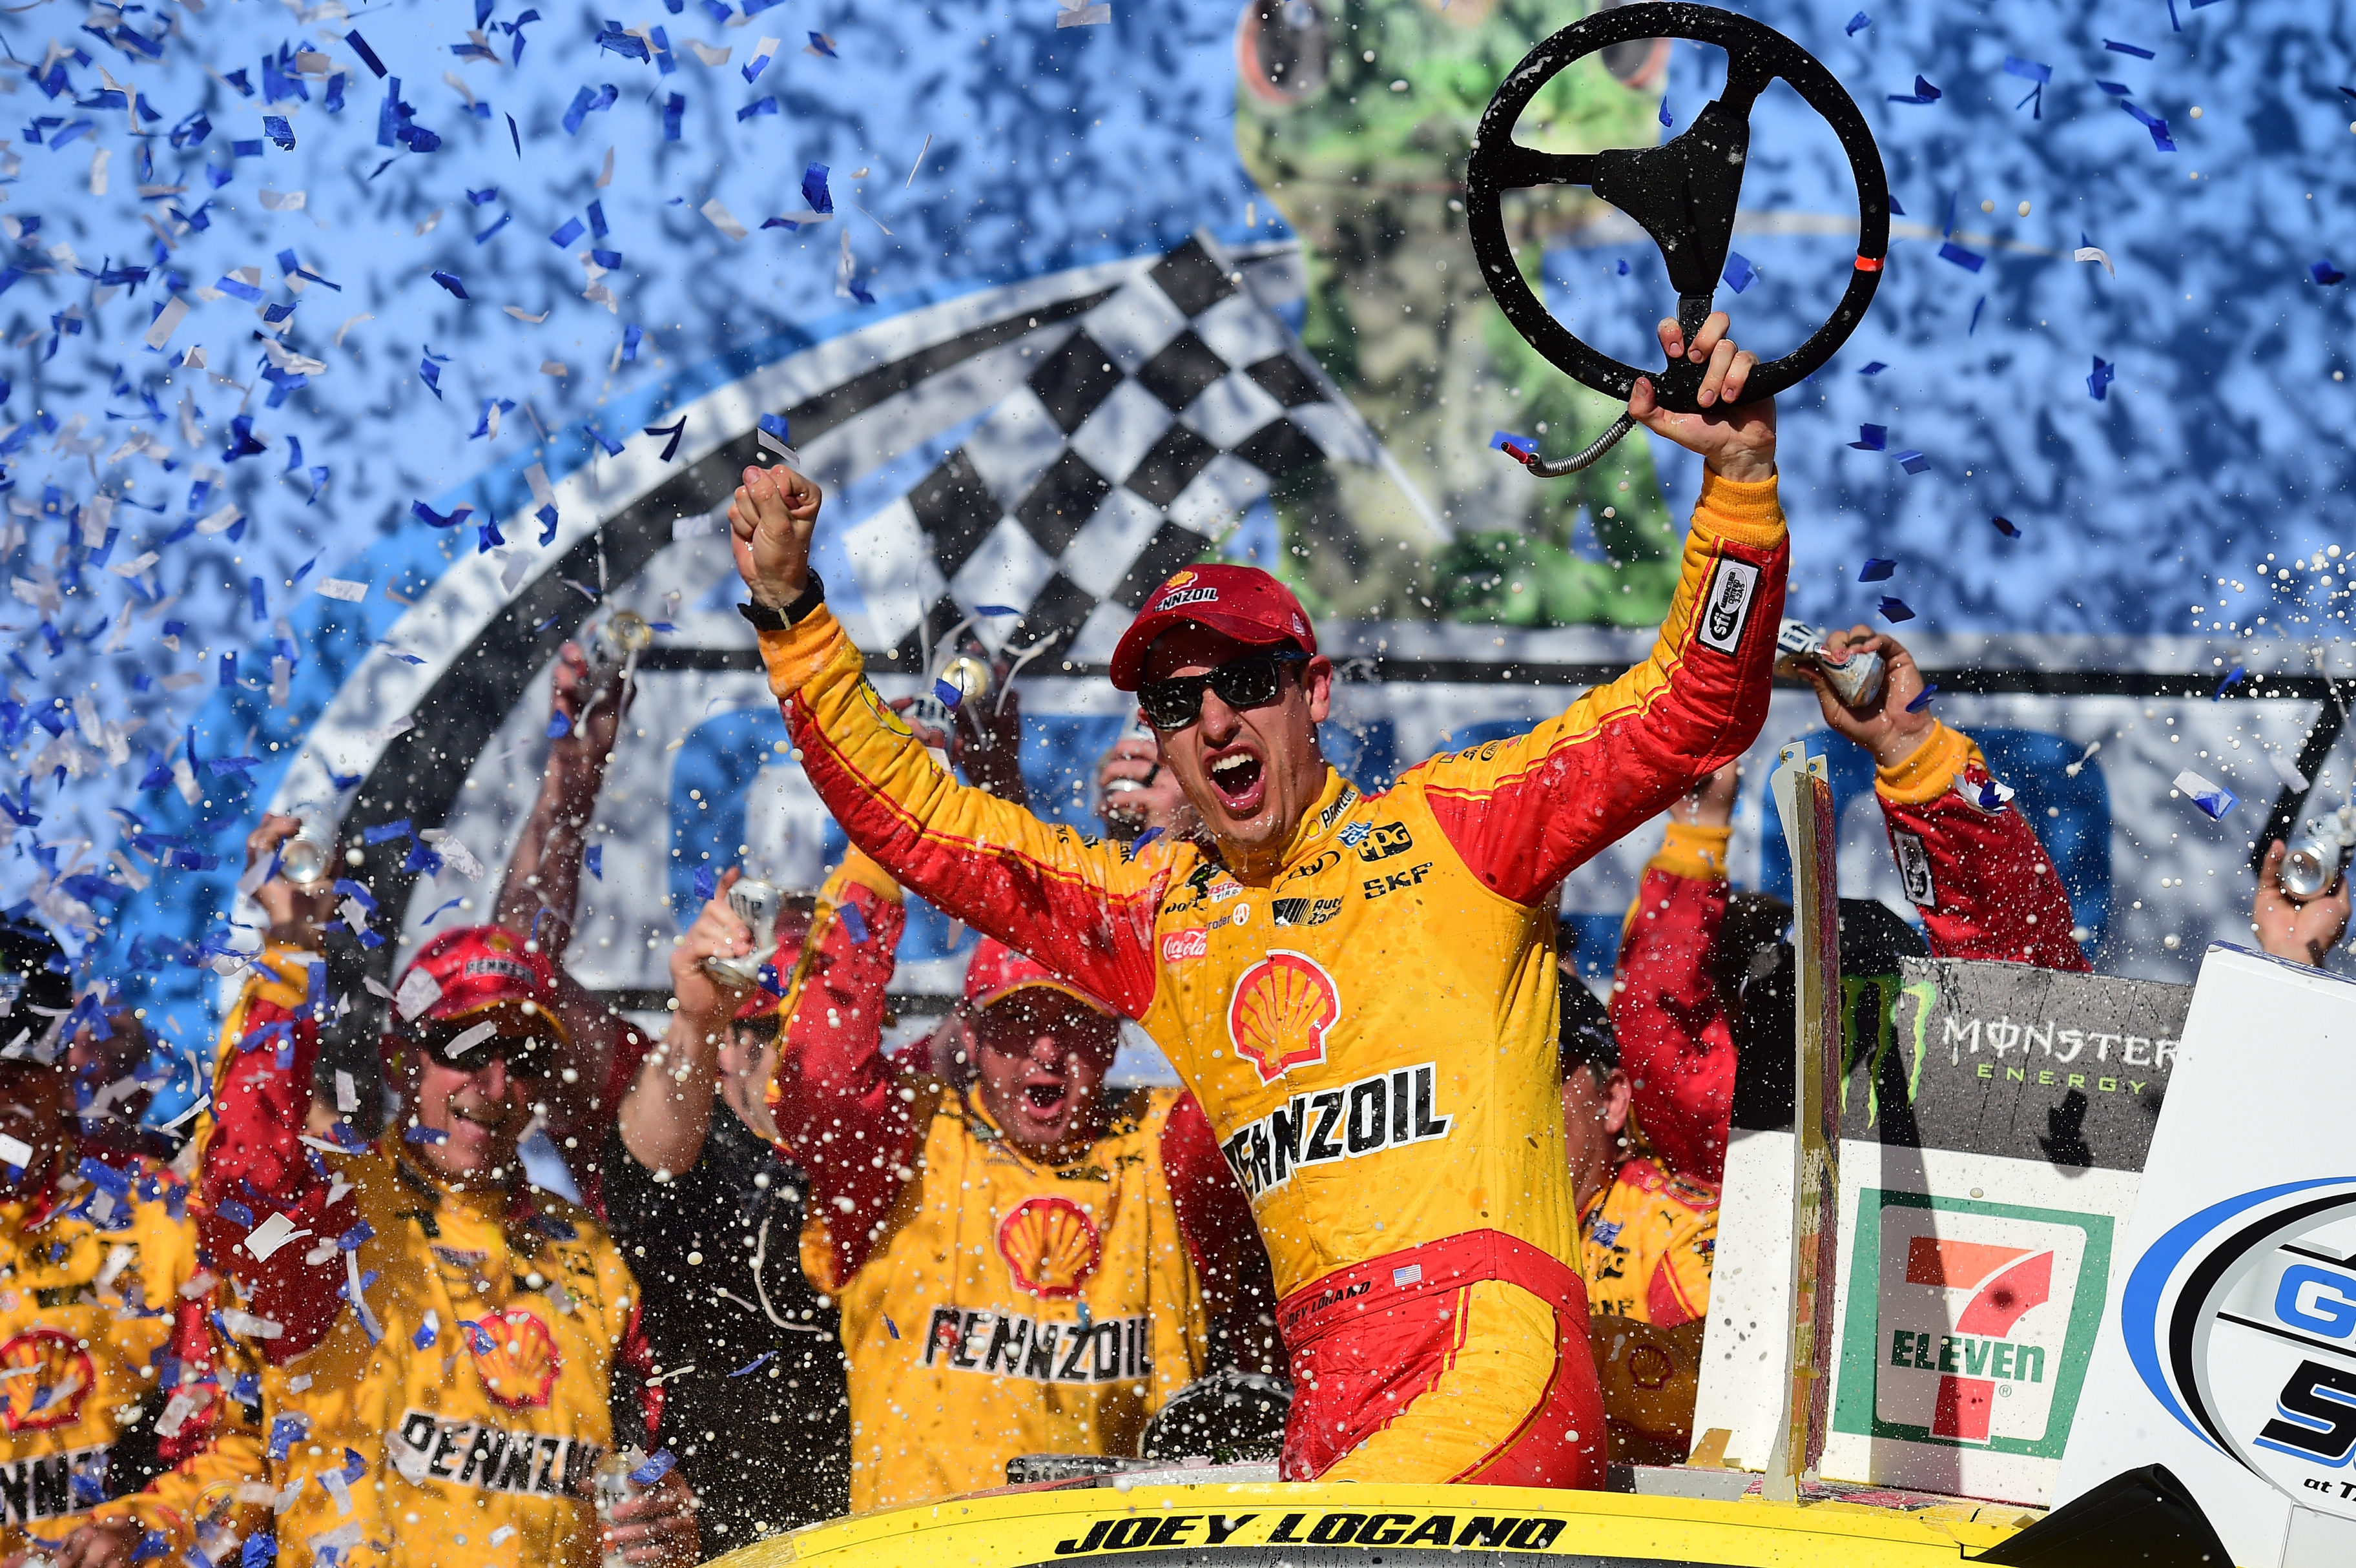 Joey Logano wins at Talladega Superspeedway - Victory Lane